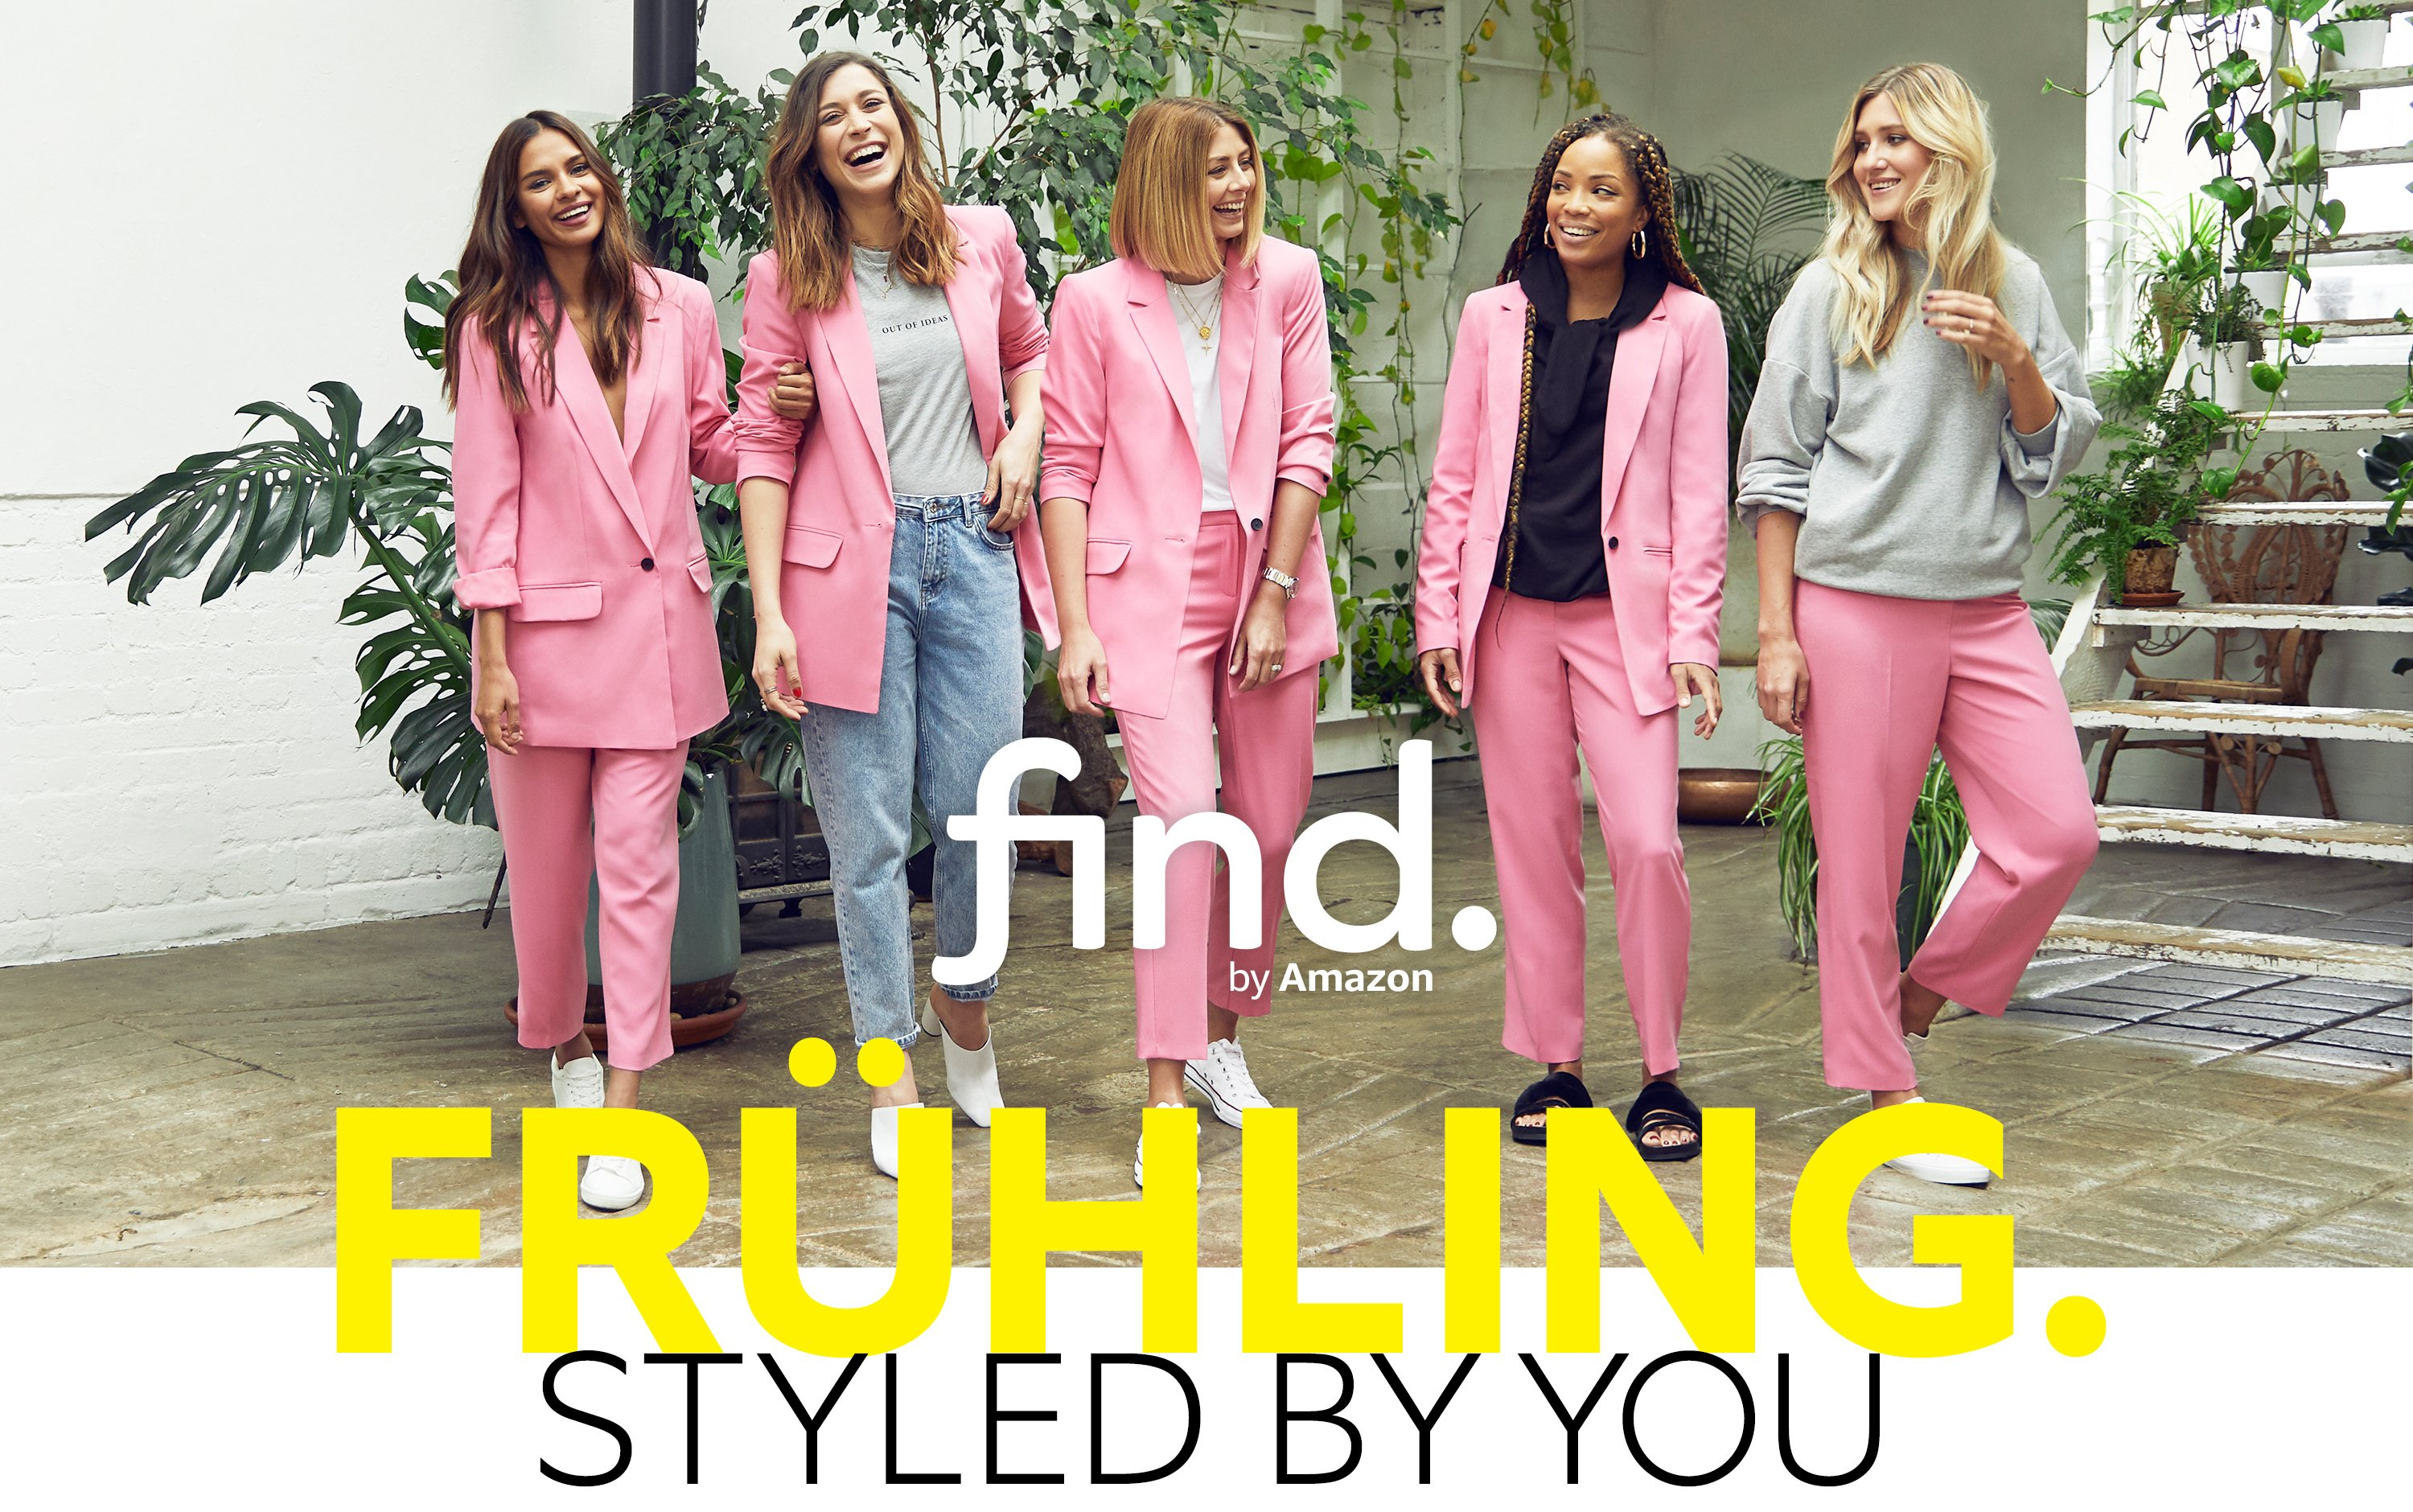 find. Frühling. Styled by You